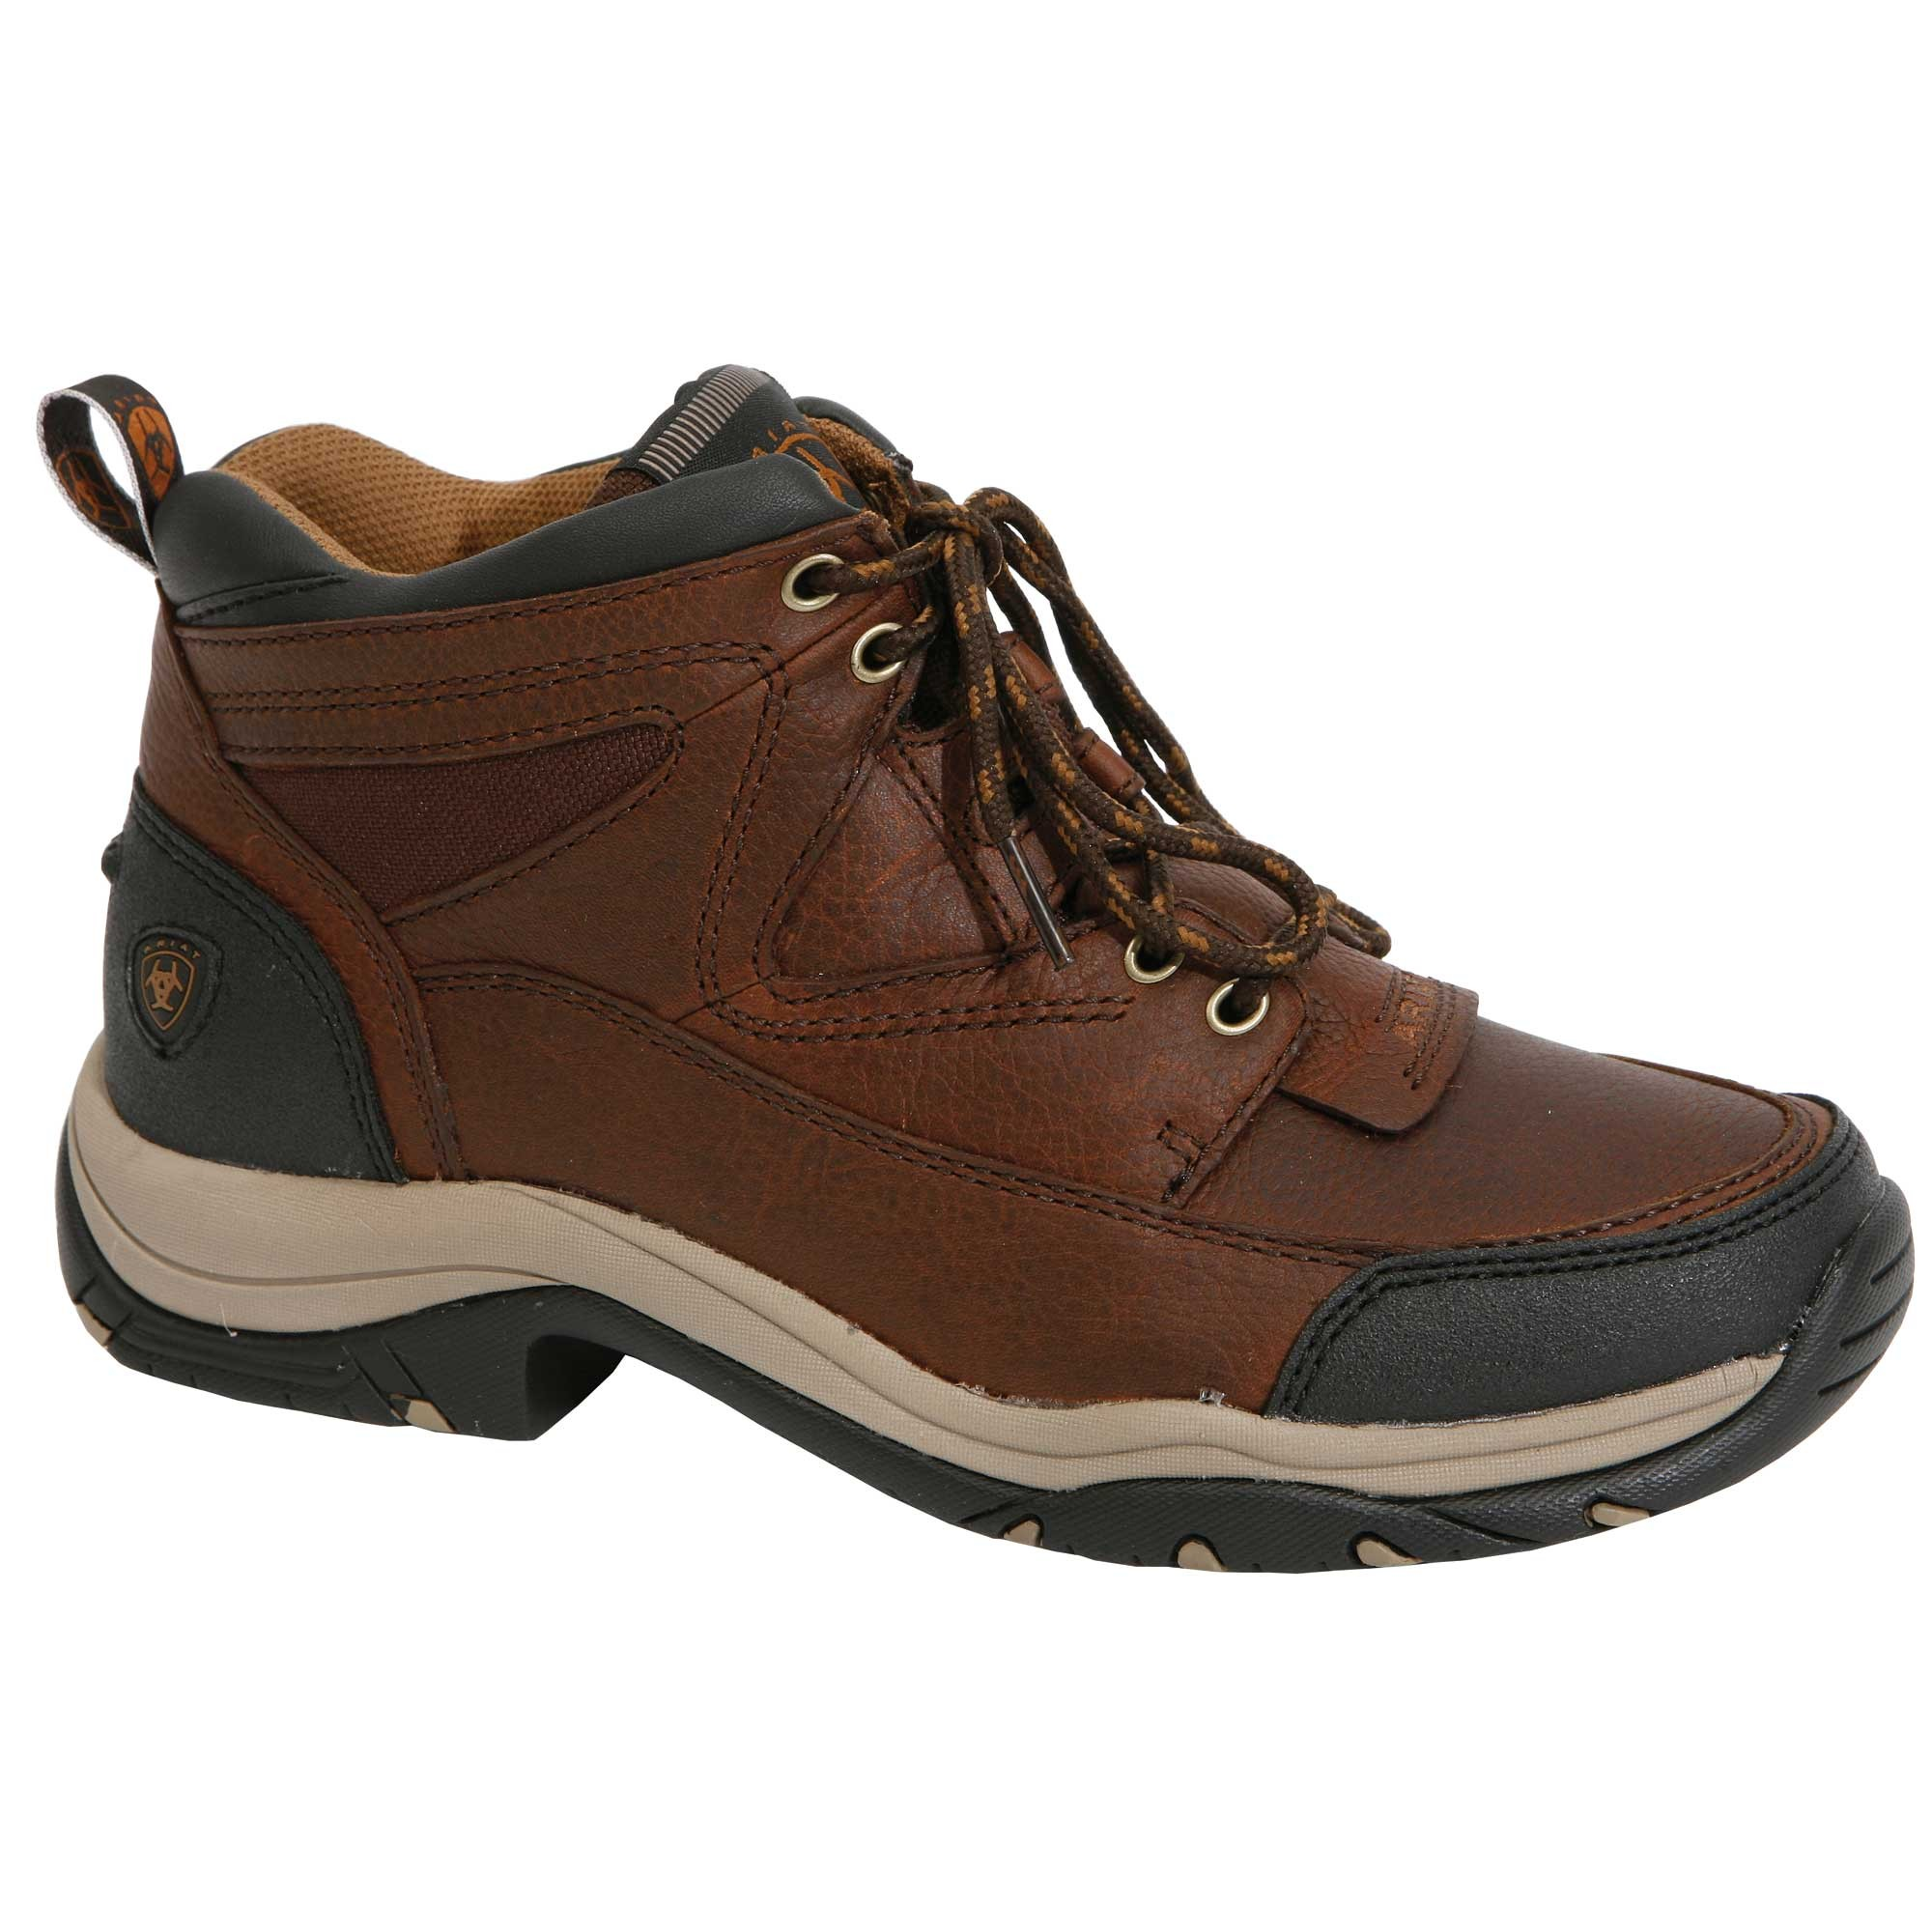 Ariat Work Boots On Sale 7UJKH5P1